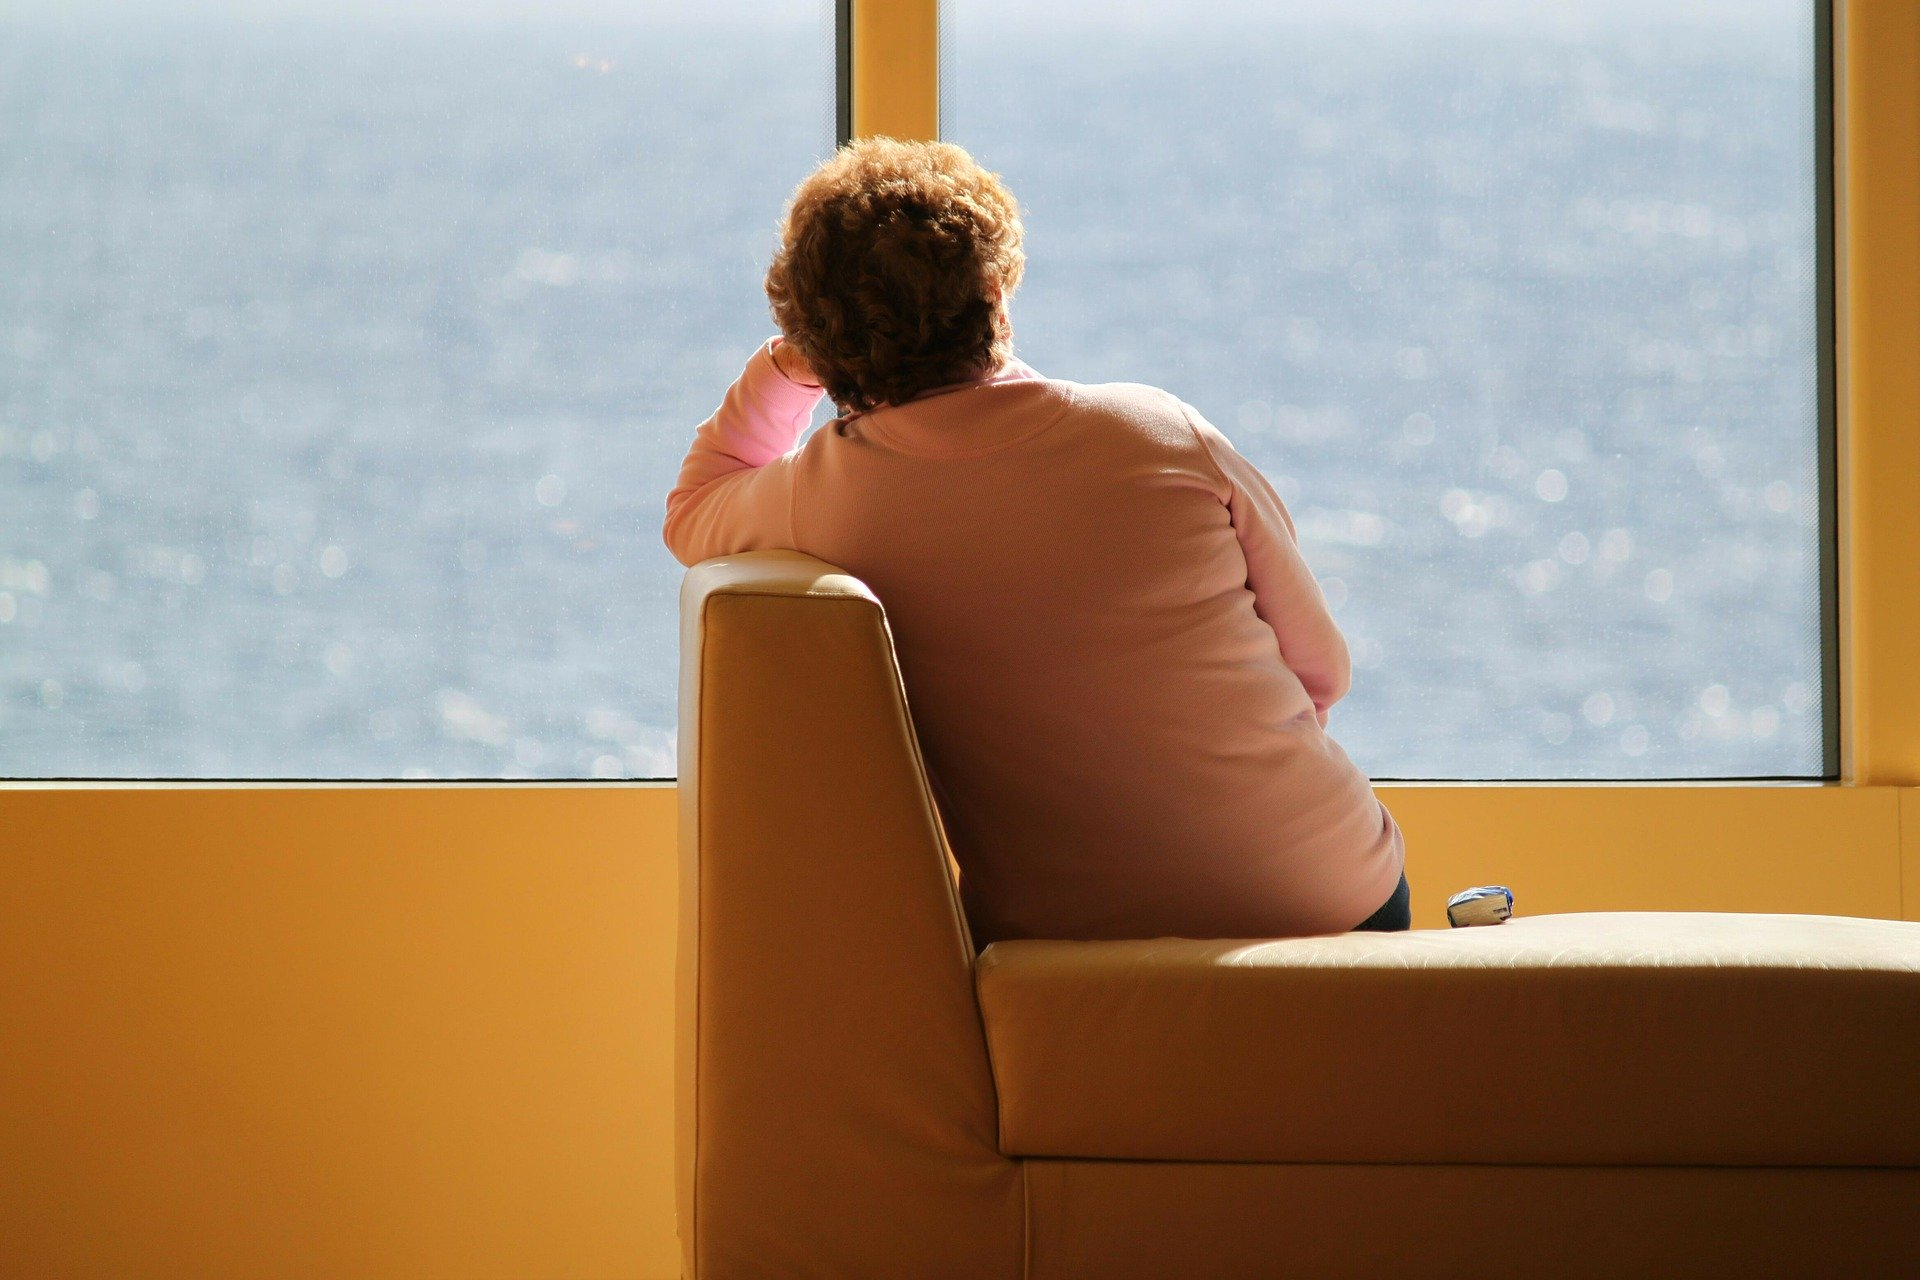 A senior woman sitting alone on the bench